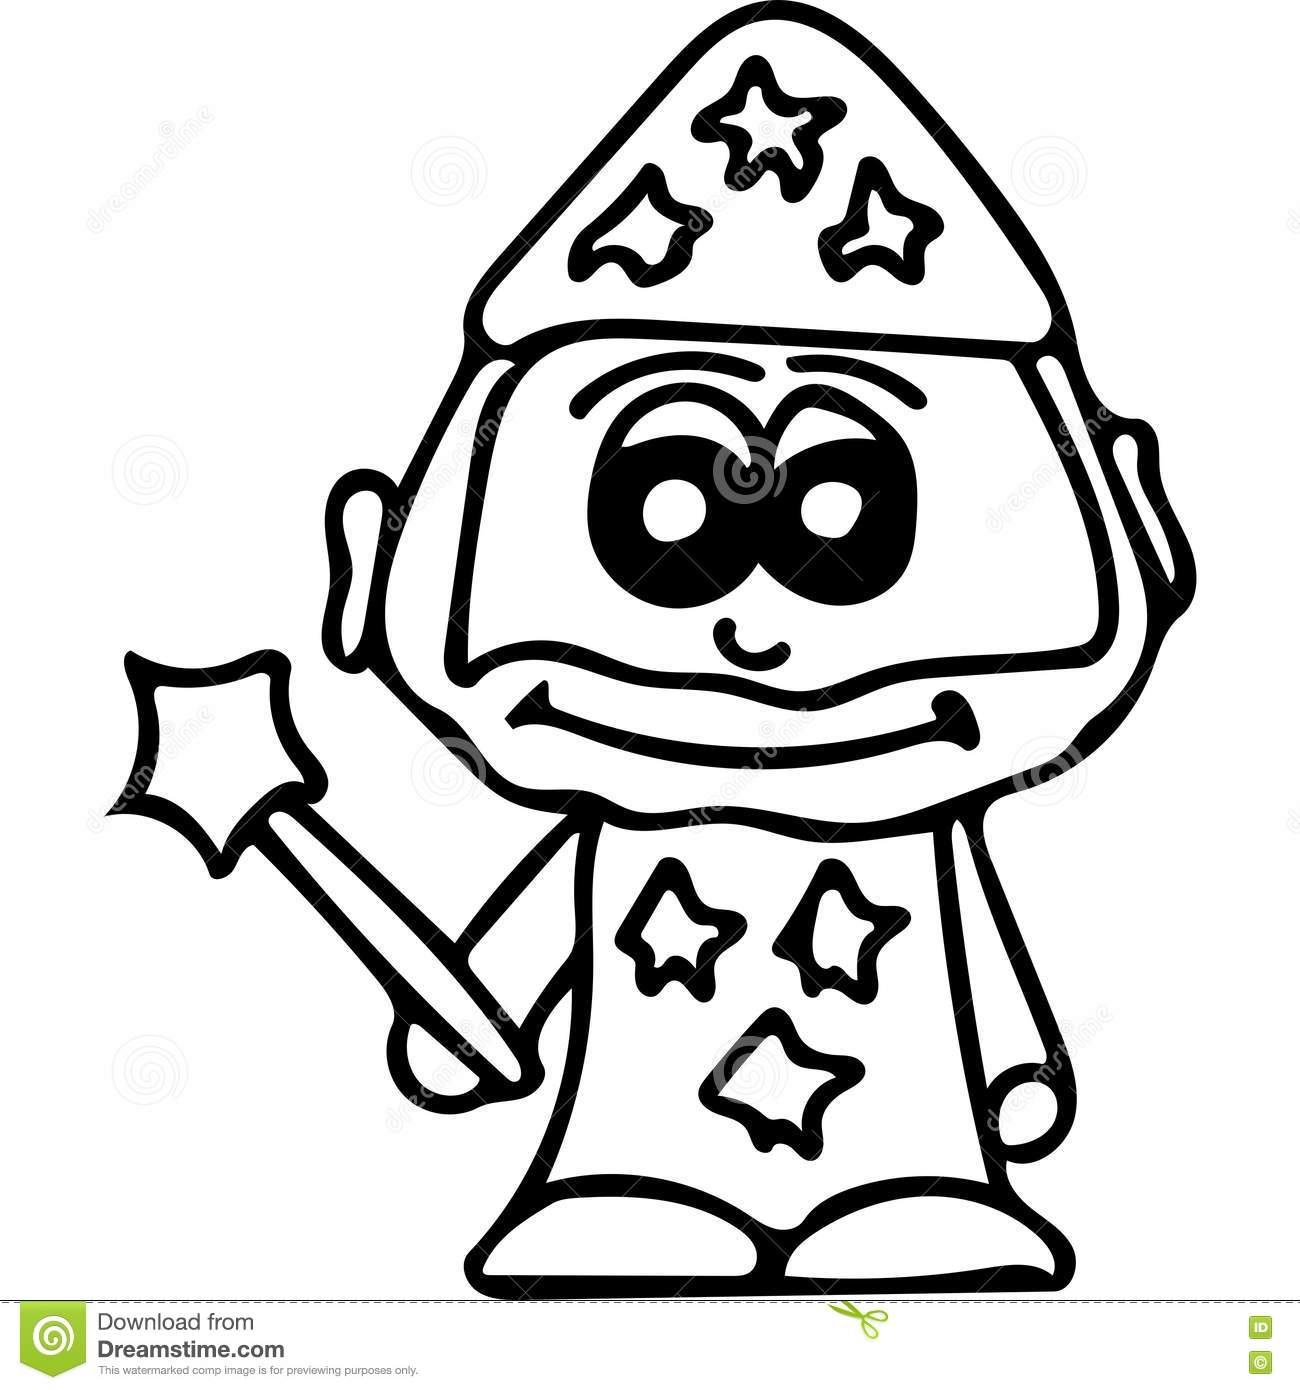 Cute Wizard Kids Coloring Page Stock Illustration - Illustration of ...